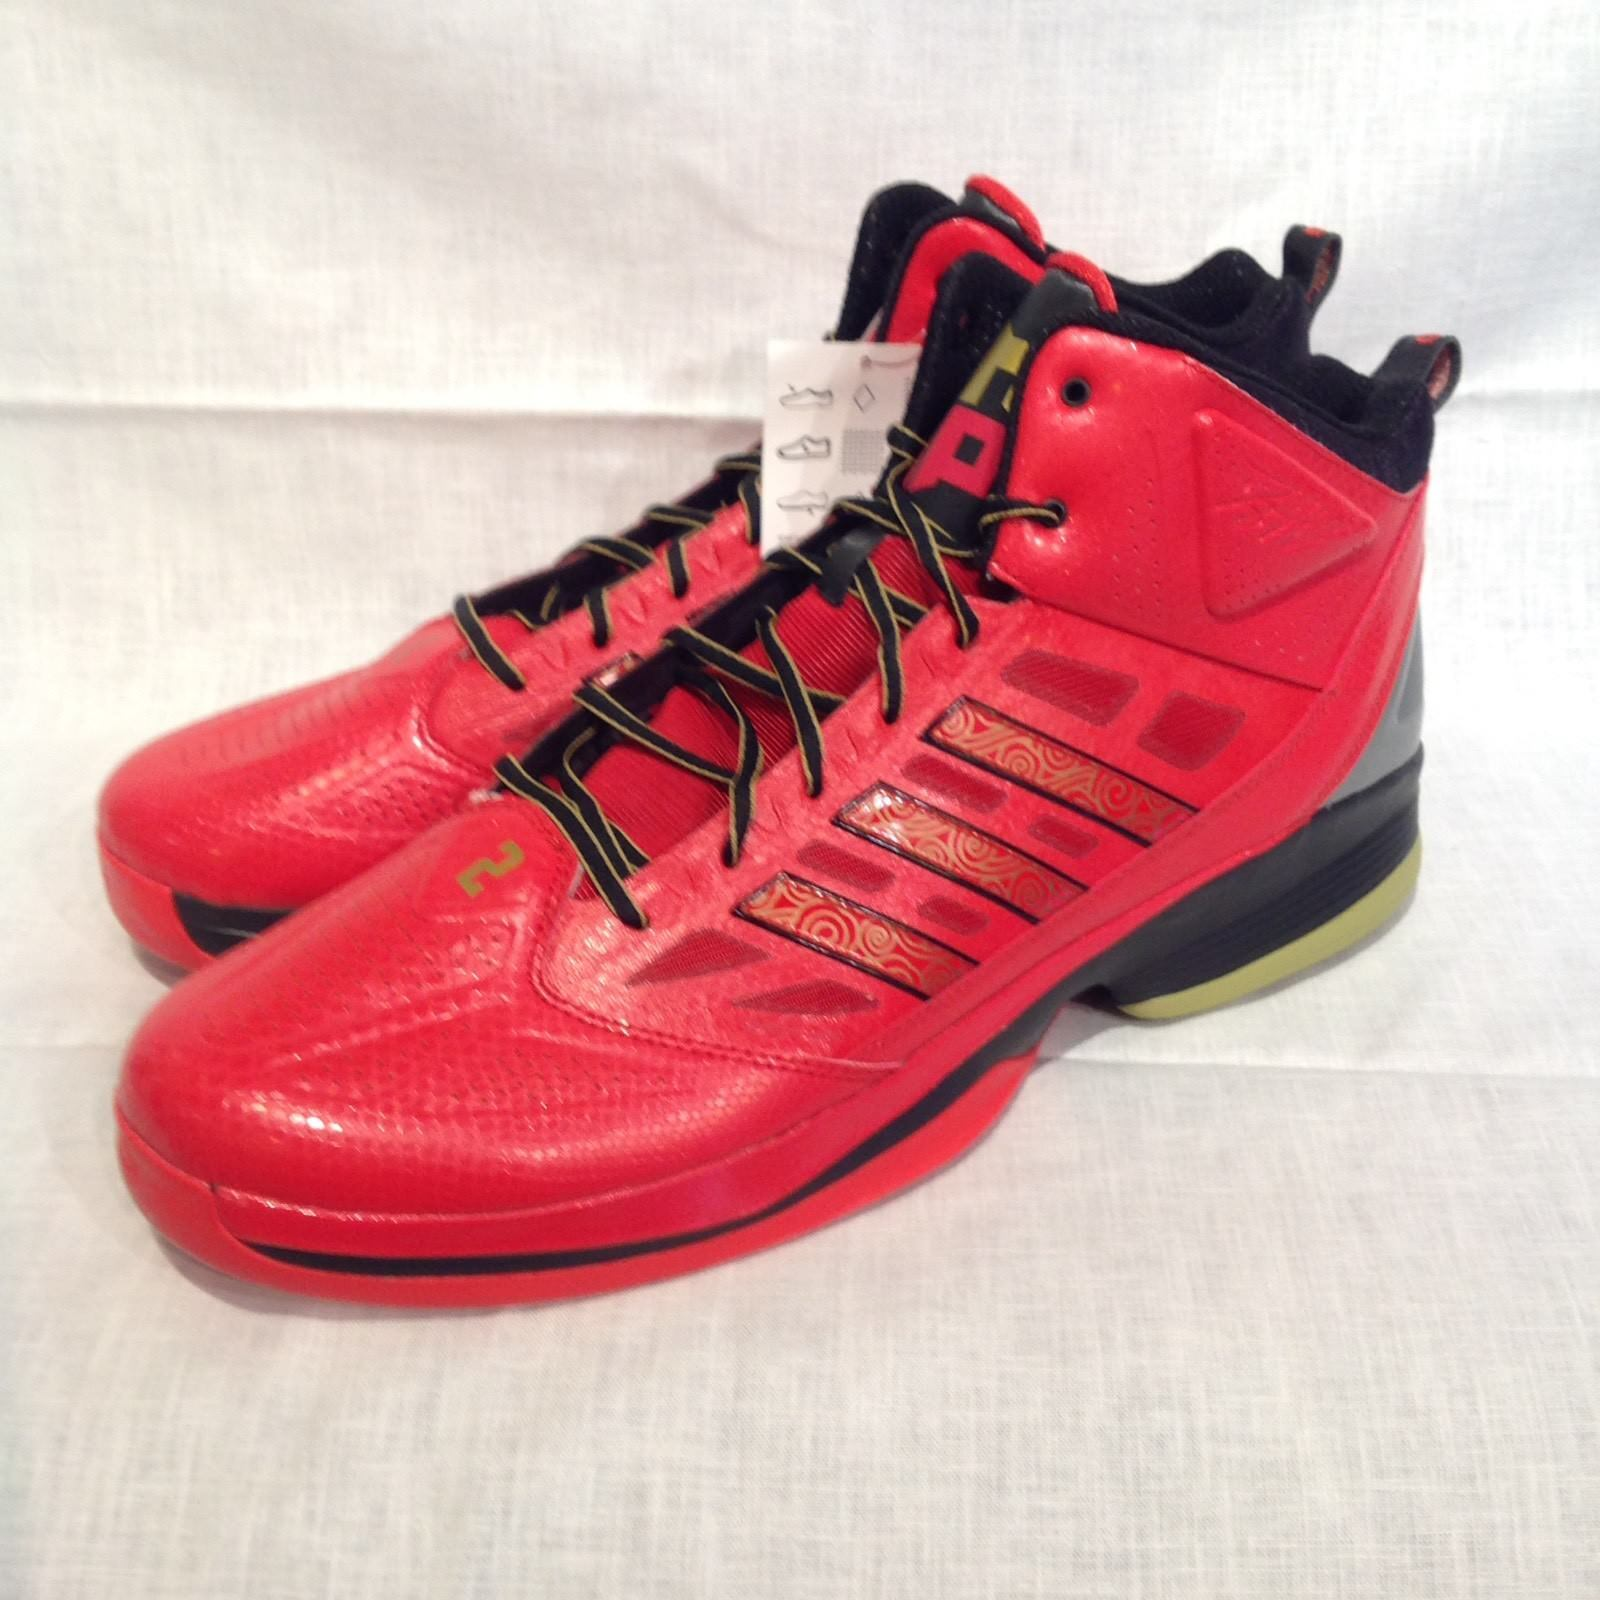 Adidas D Howard Light Basketball Sneakers - Size 17